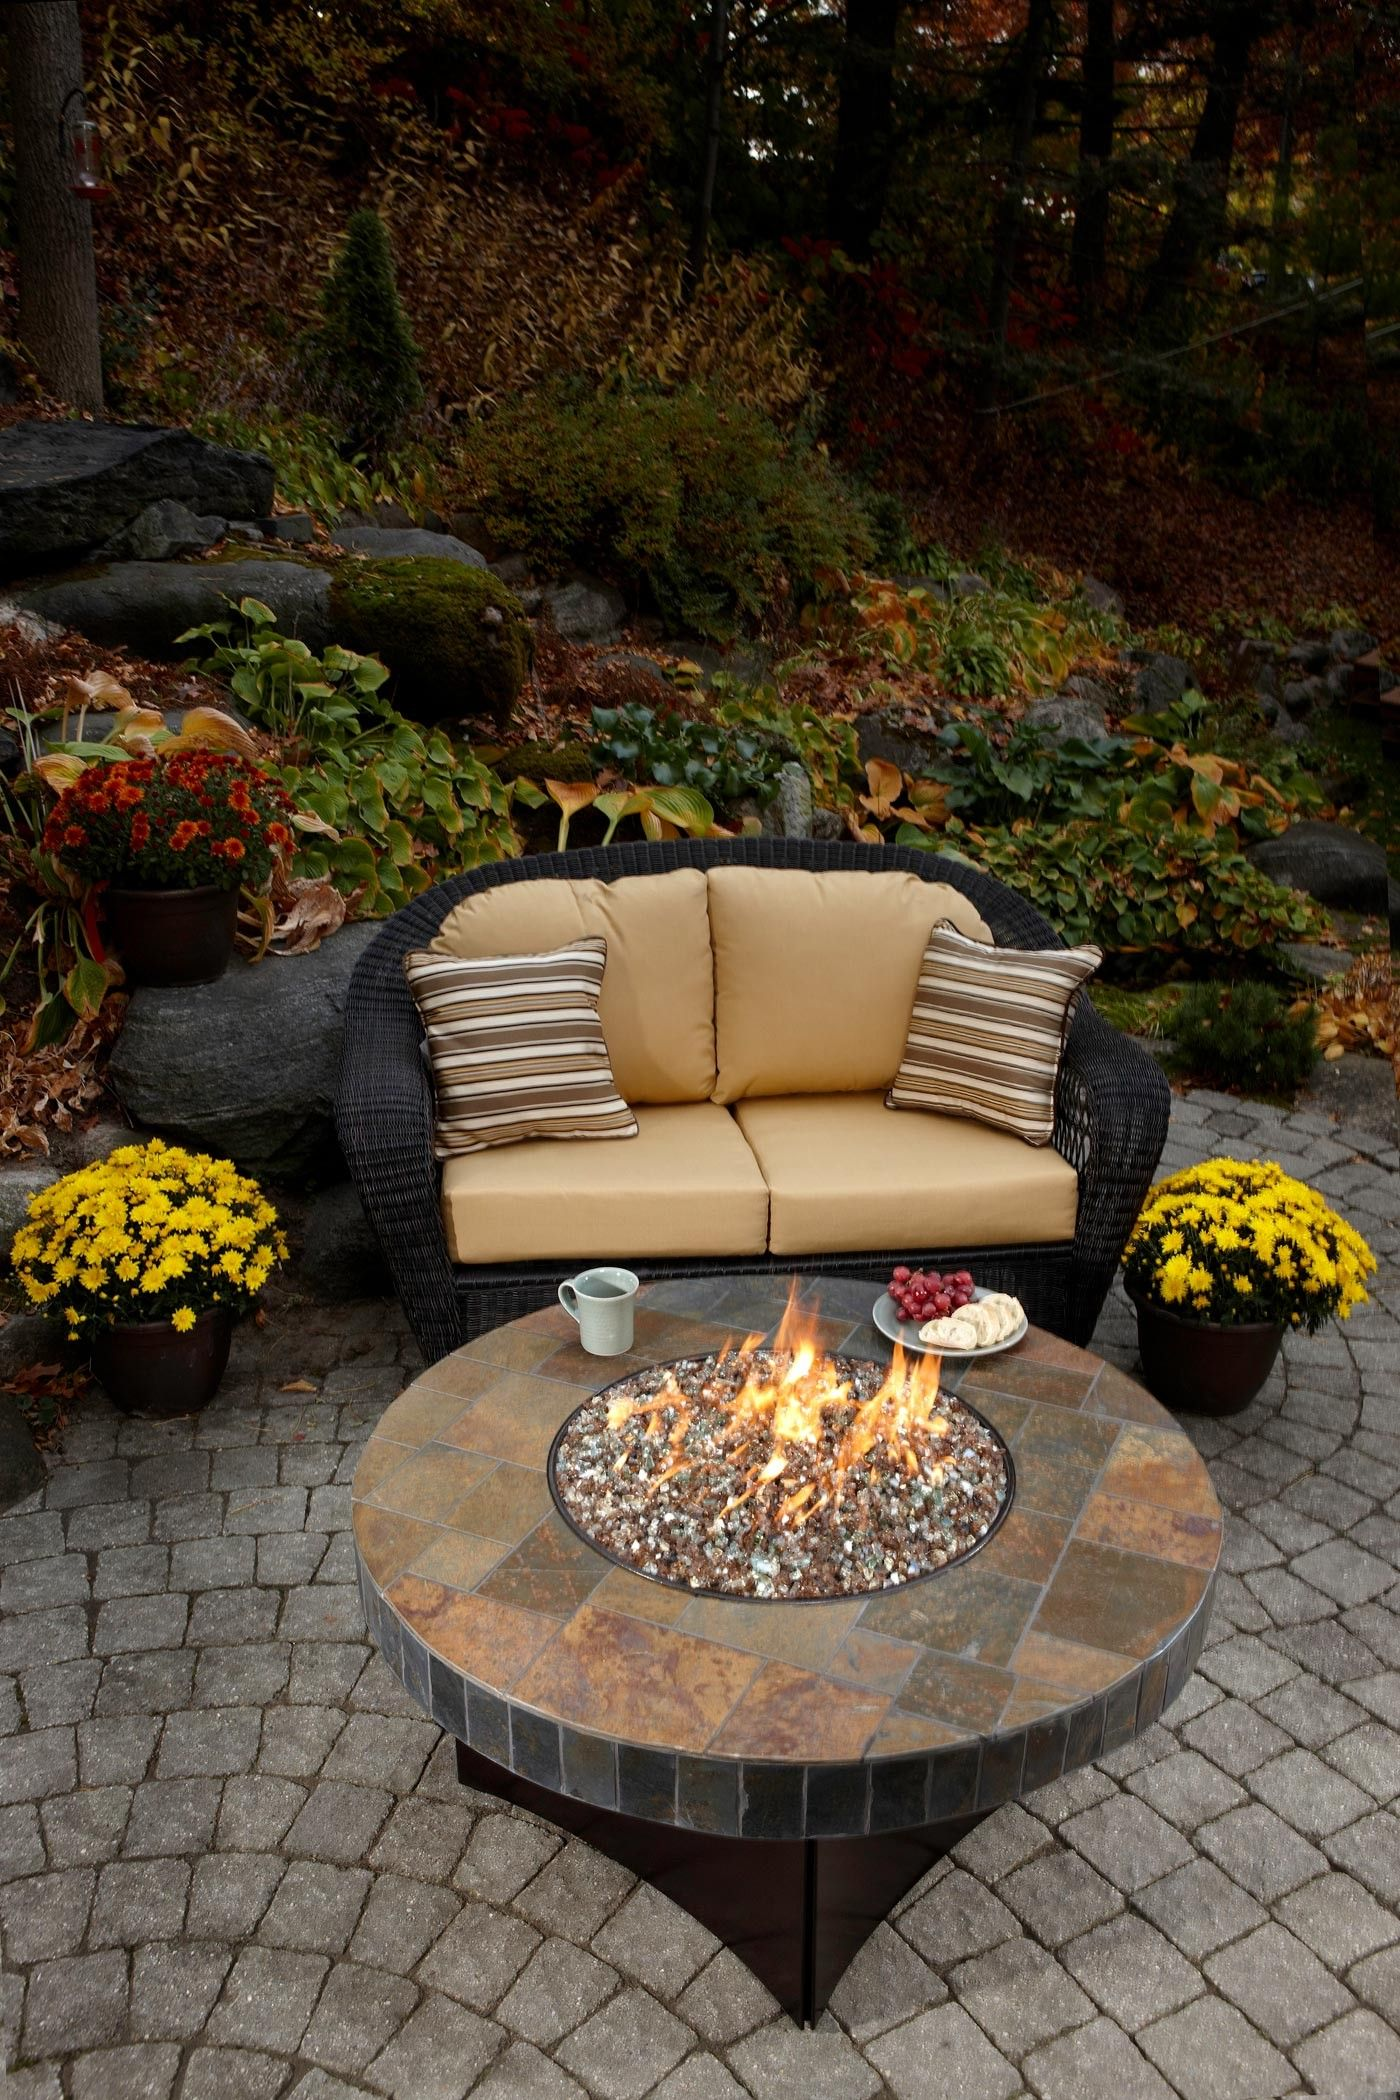 Oriflamme Fire Table Santa Fe Mosaic Stone Gas Fire Pit